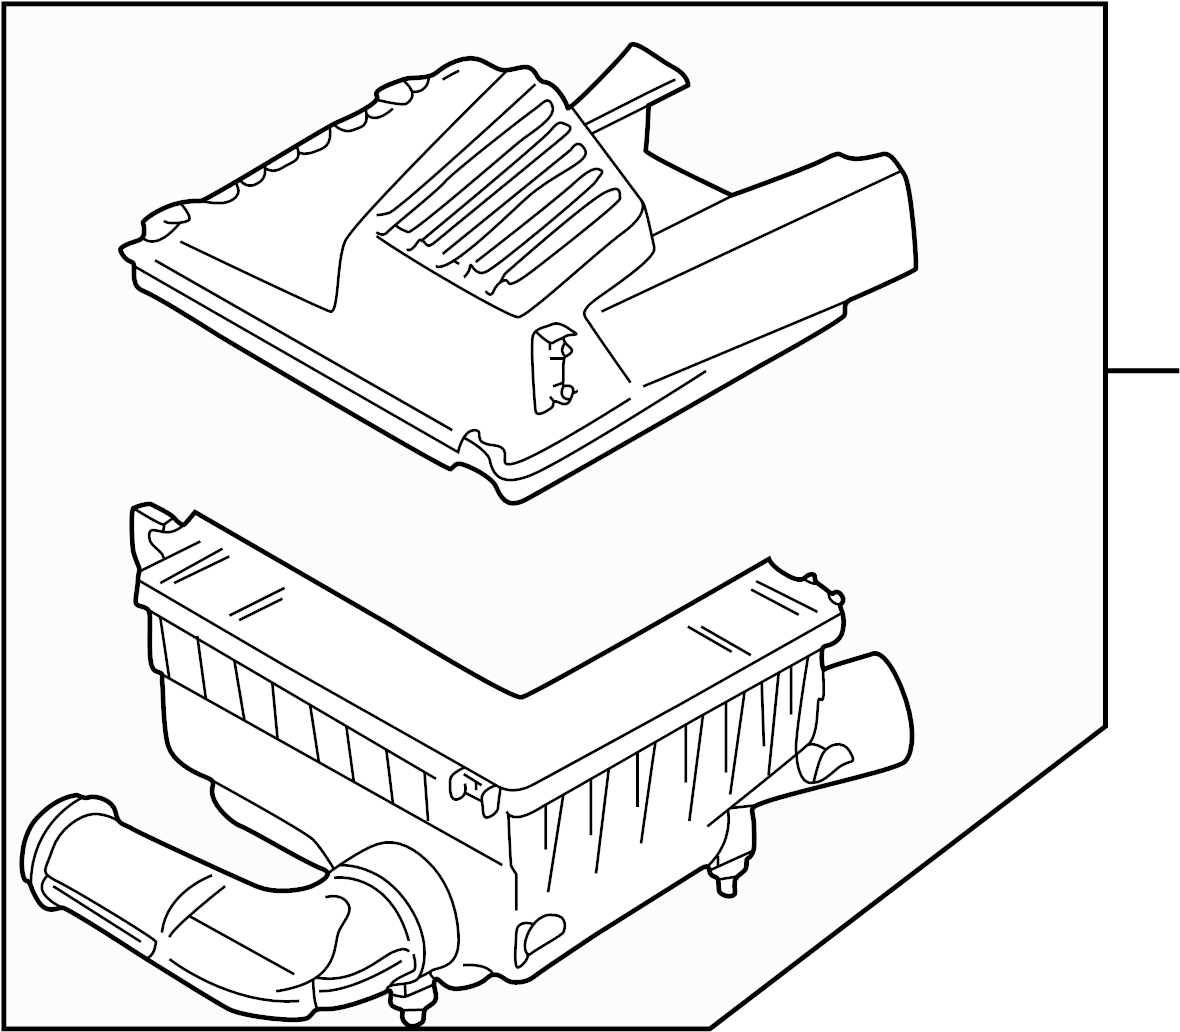 Volkswagen Cabrio Air Filter and Housing Assembly. AIR